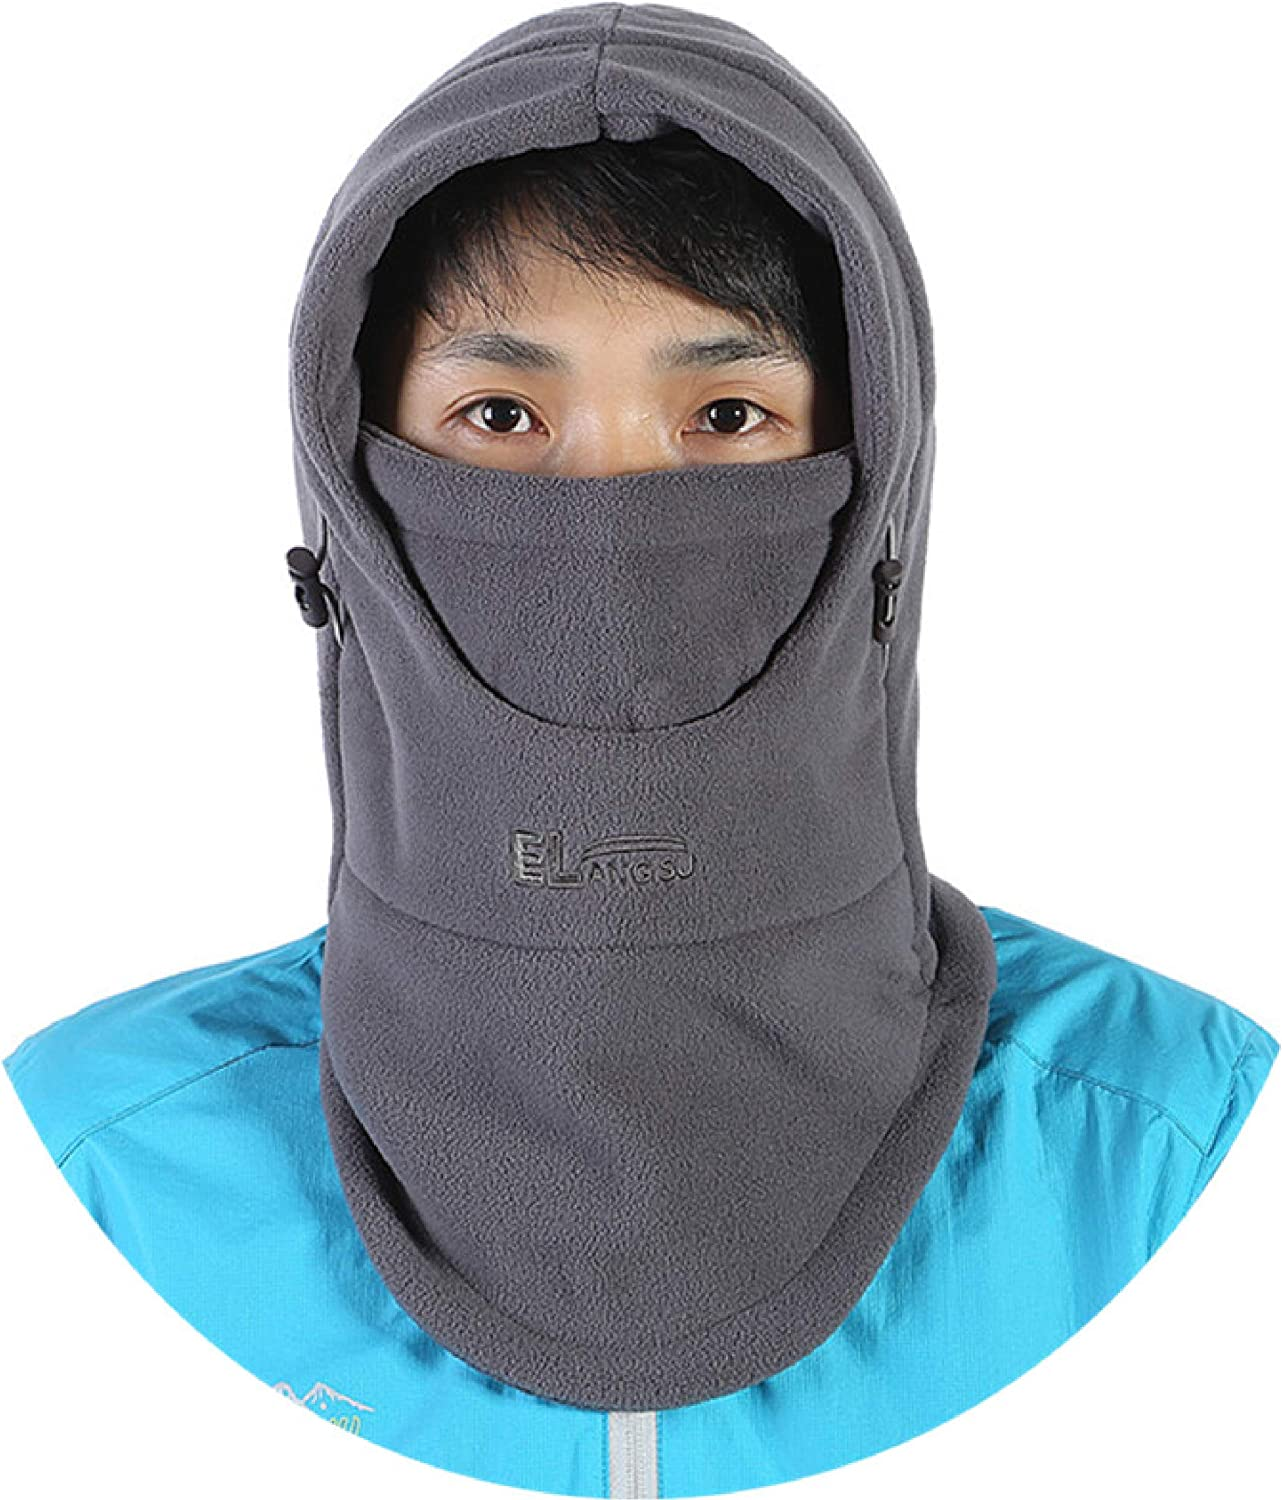 TRIWONDER Balaclava Face Mask for Cold Weather Fleece Ski Mask Neck Warmer